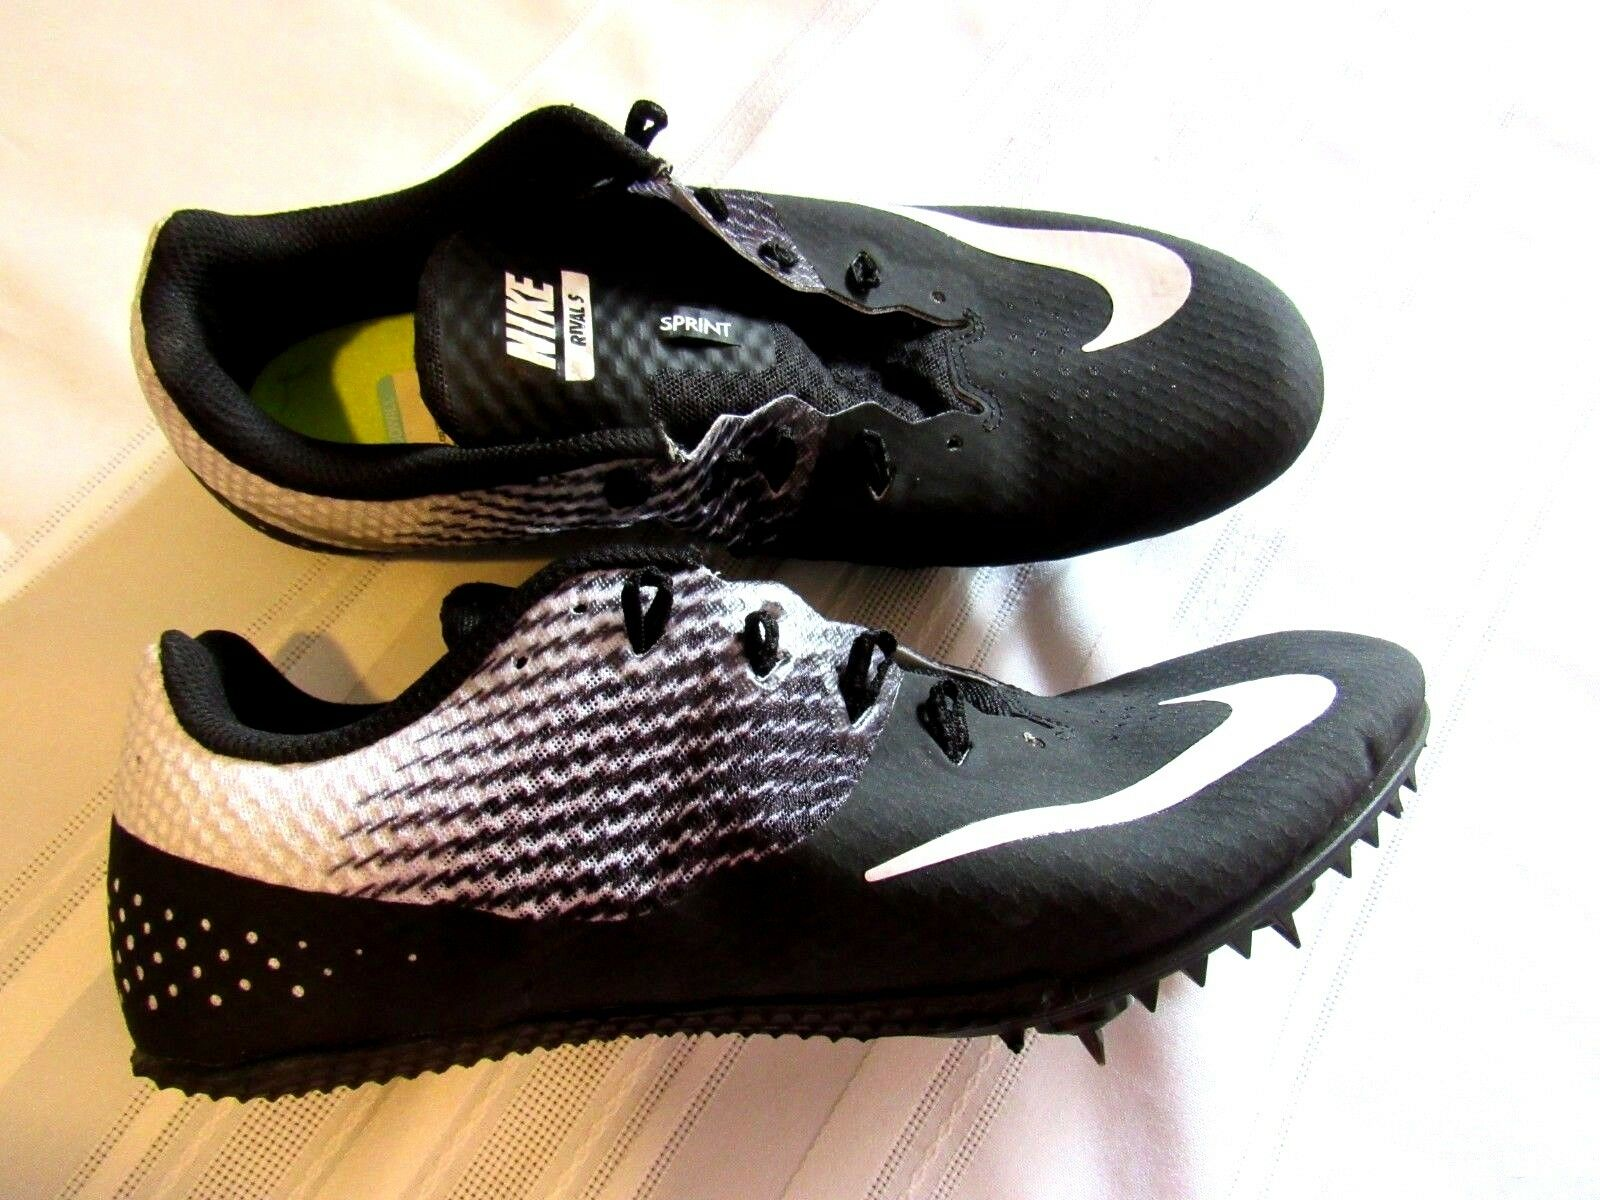 NIKE SPRINT RACING MEN'S BLACK TRACK FIELD SPIKES SHOES,SIZE 9.5 NEW WITHOUT BOX